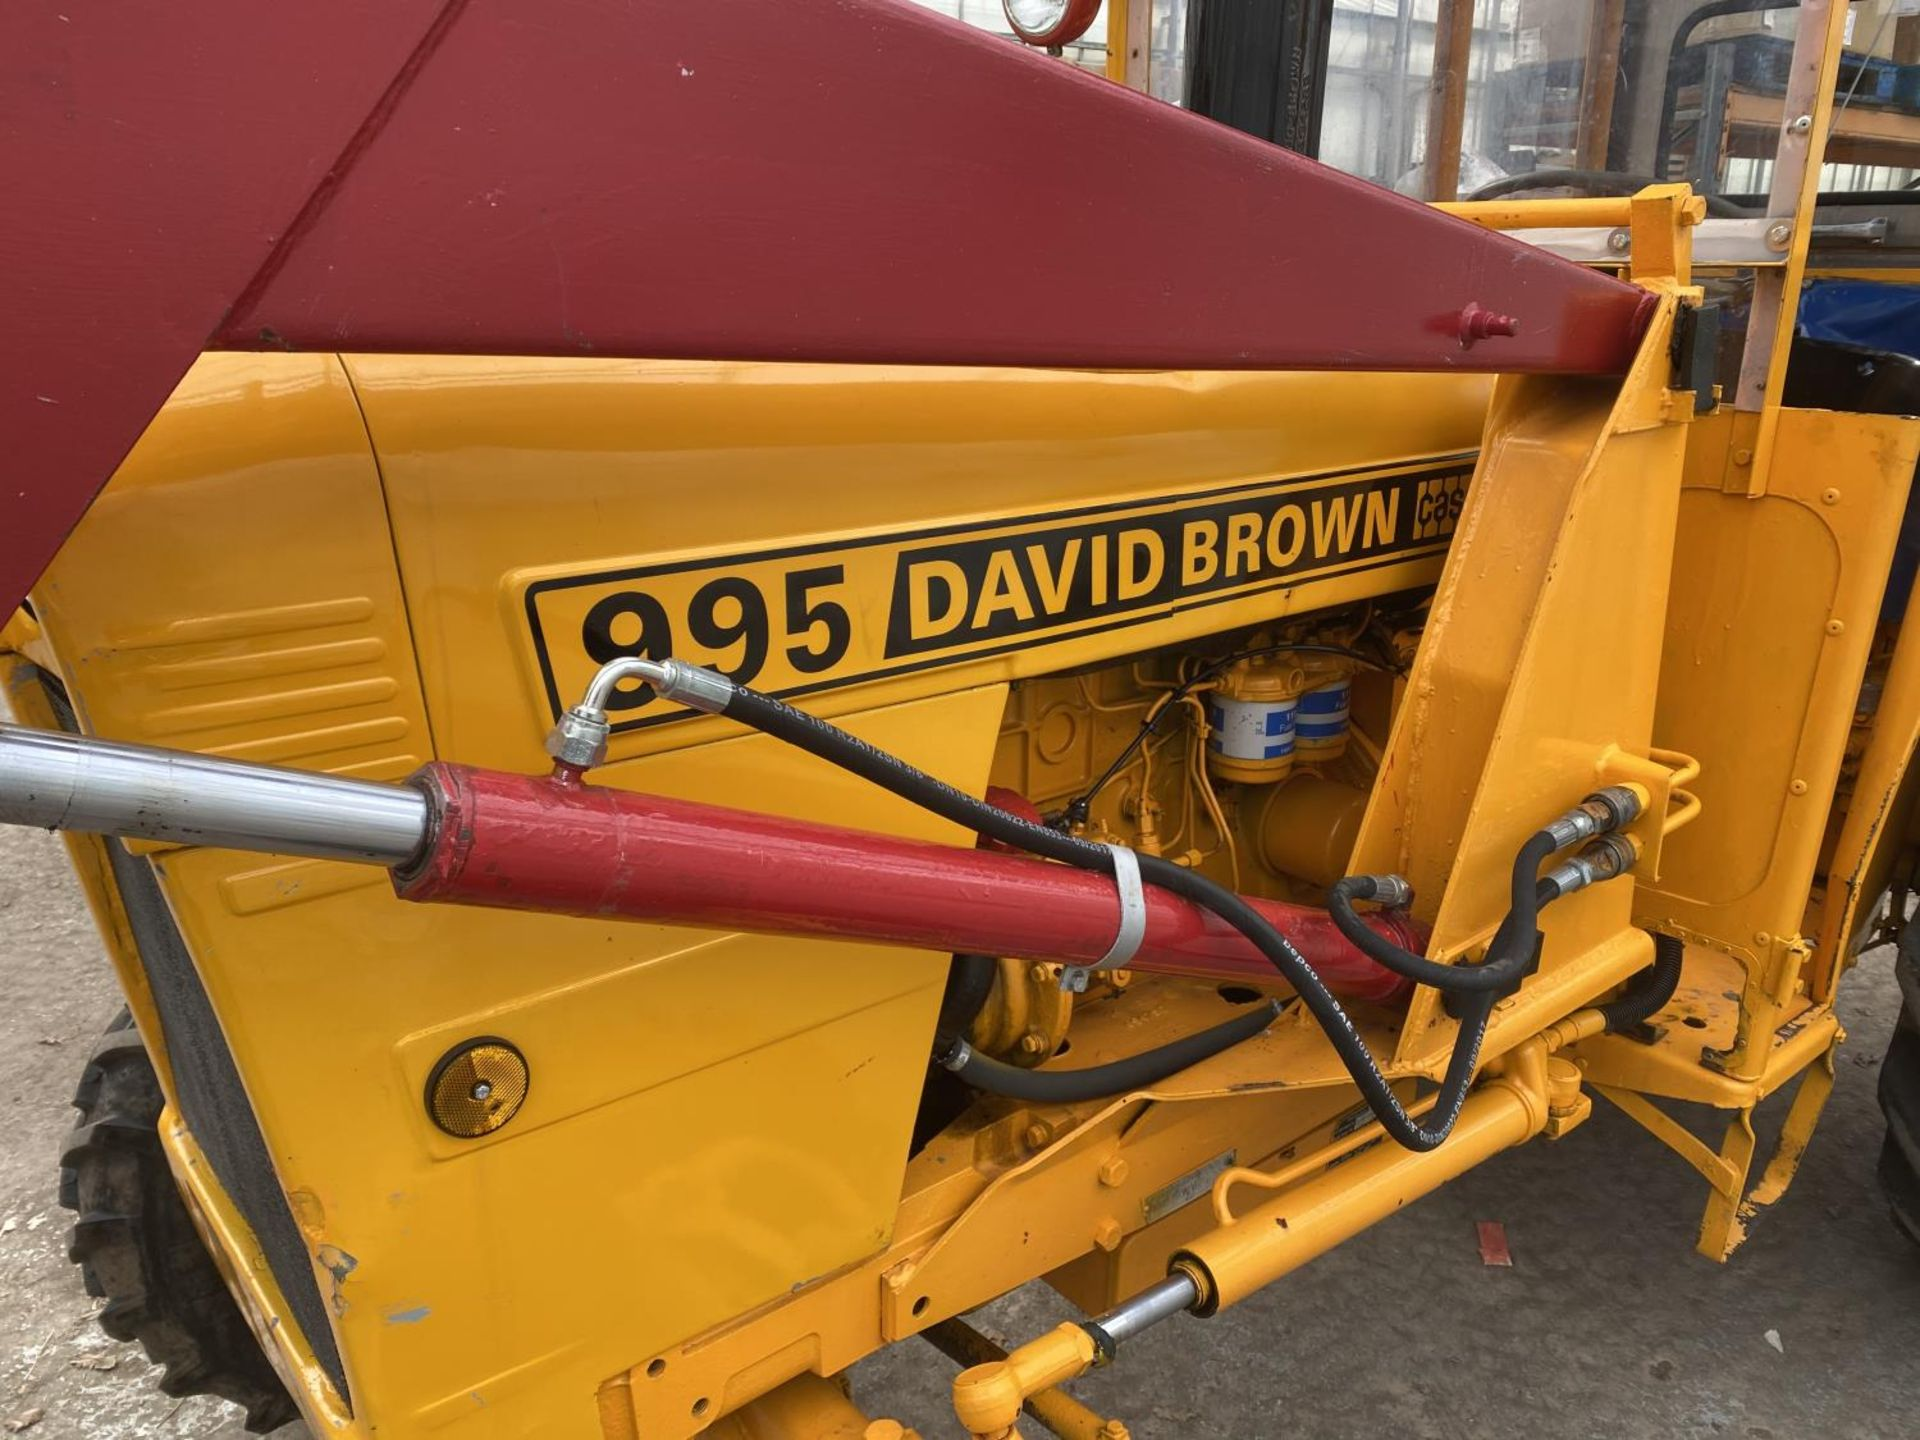 A DAVID BROWN 995 TRACTOR WITH FORE END LOADER AND MANURE FORK 3779 HOURS - Image 2 of 11